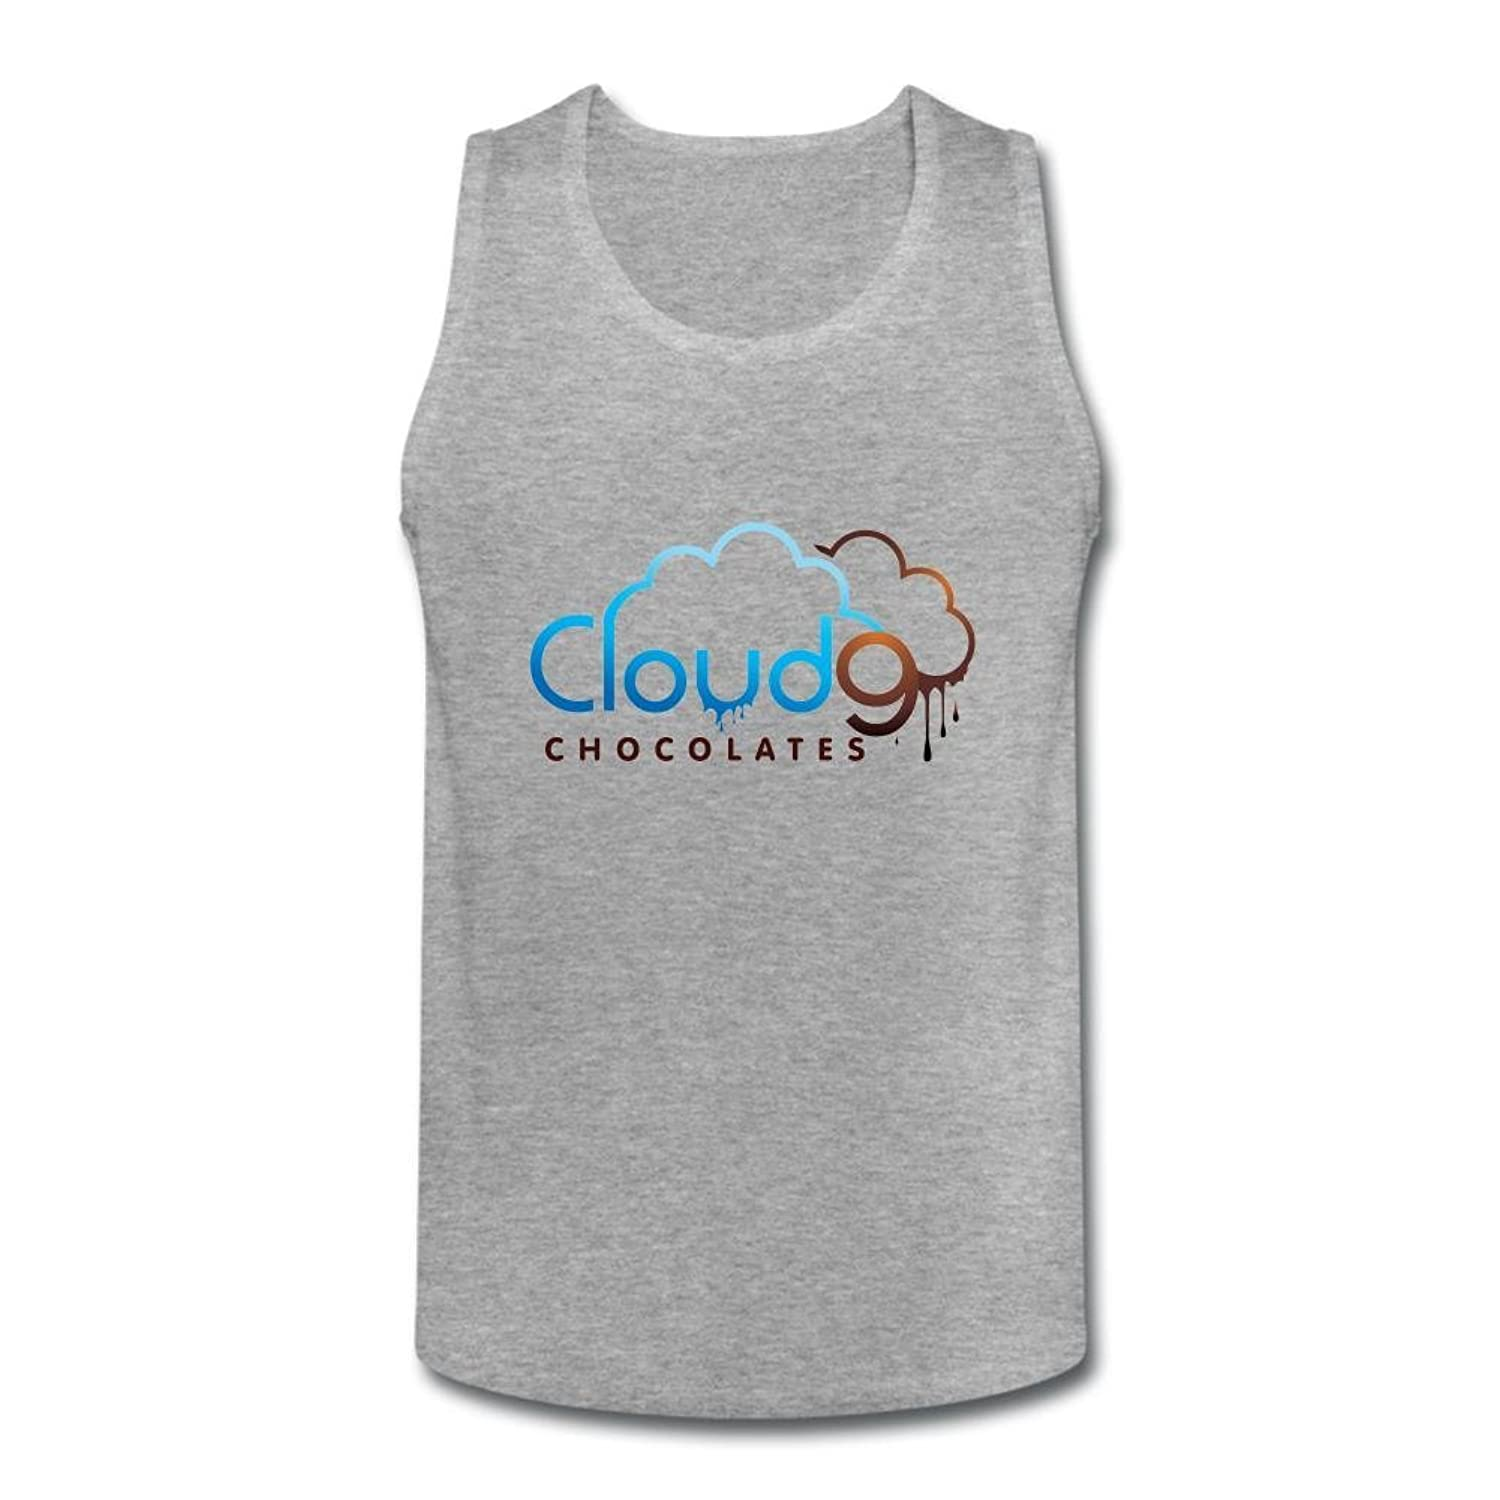 OULIN Men's Cloud 9 Vest White XXXL